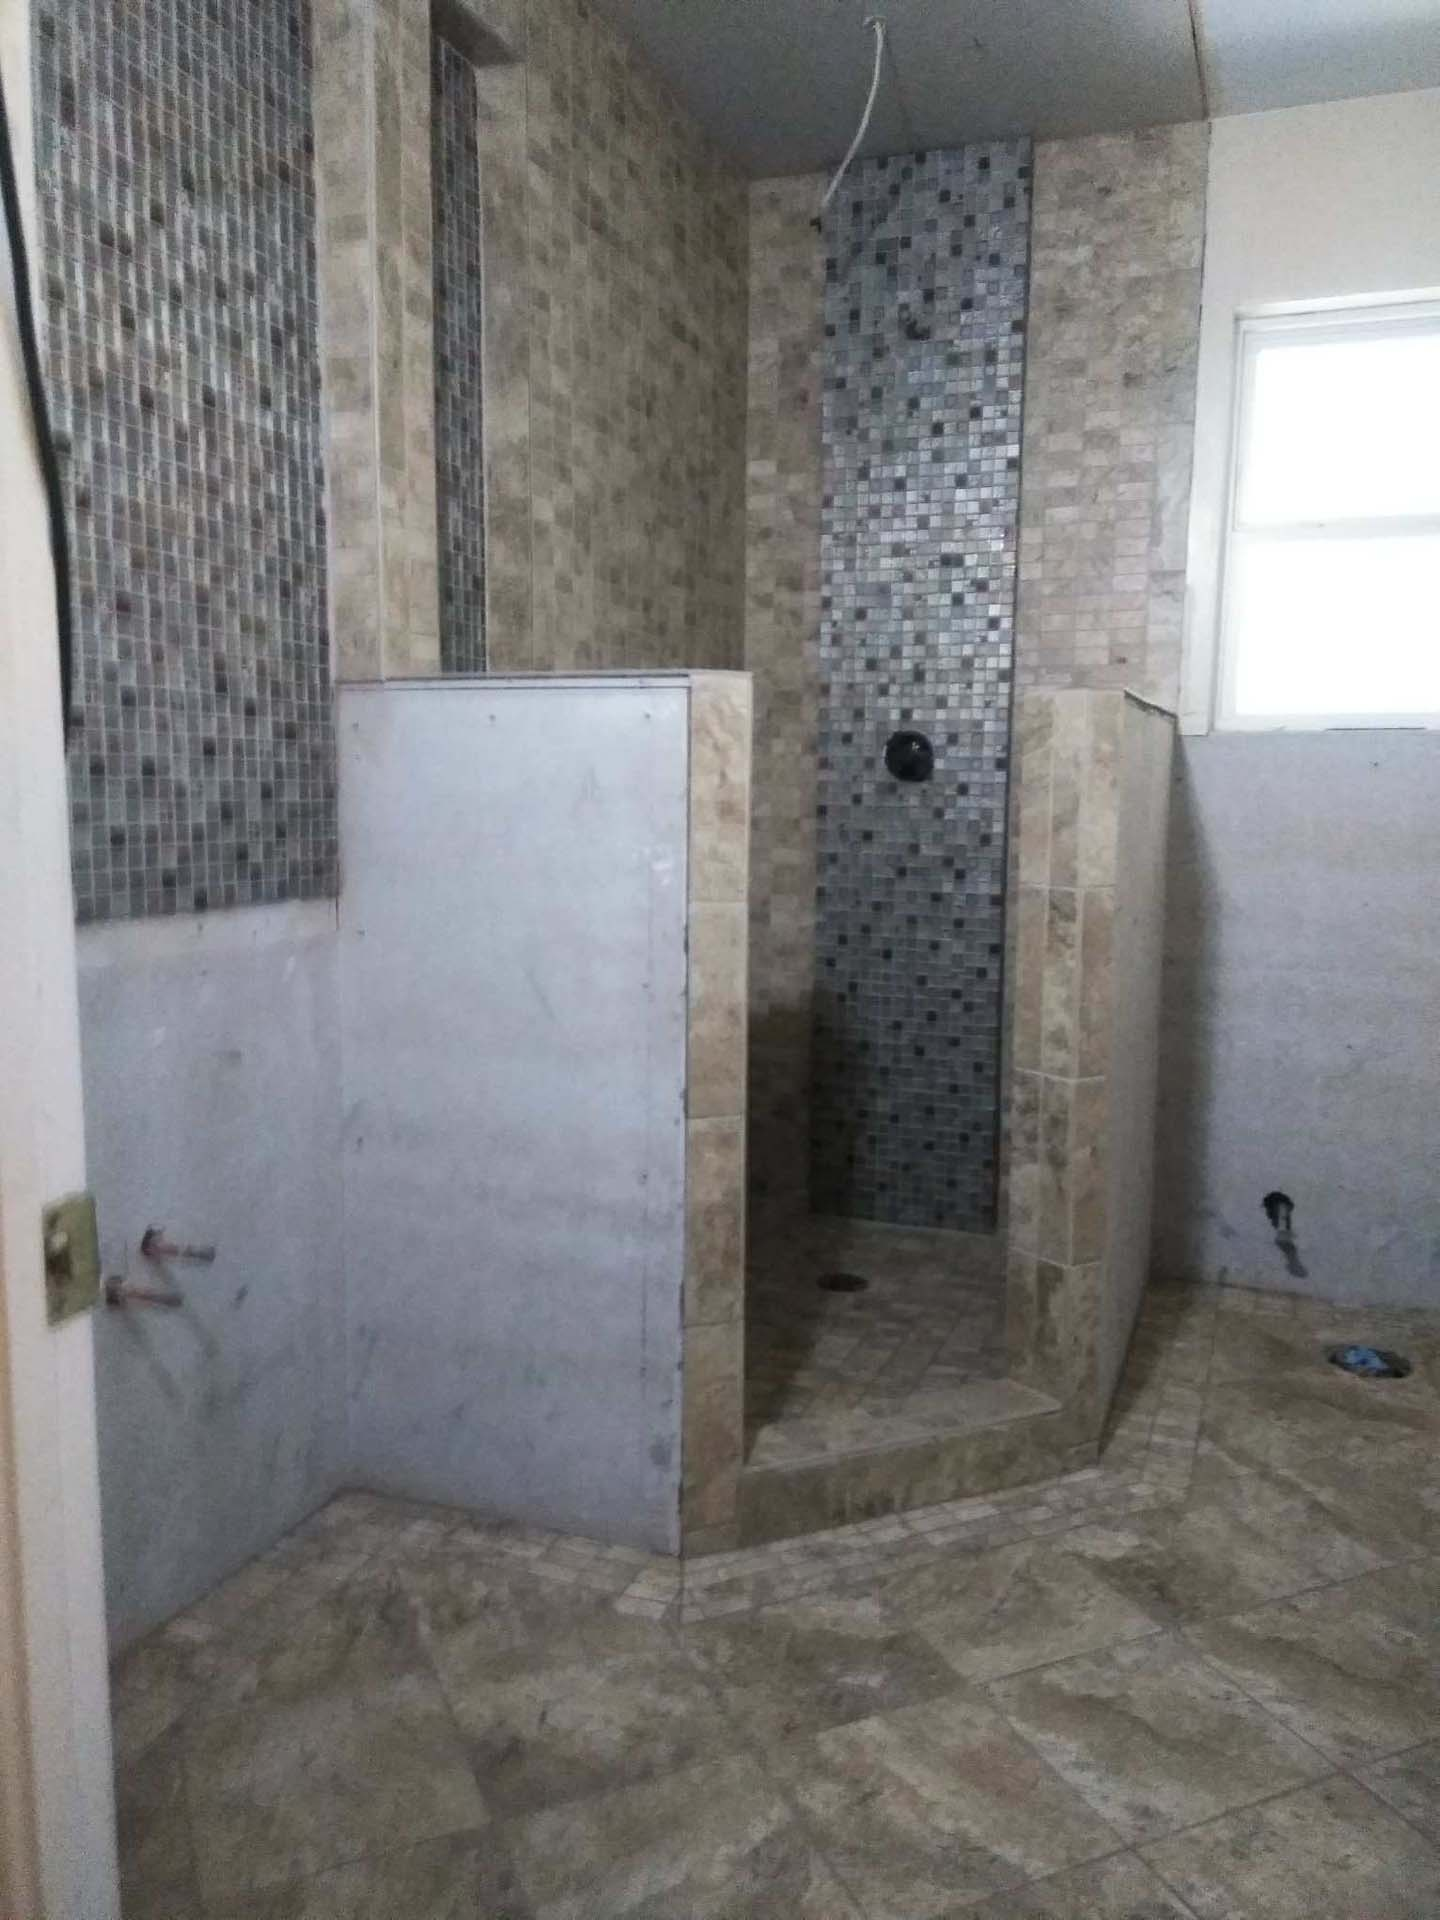 35 Shower and bath in progress